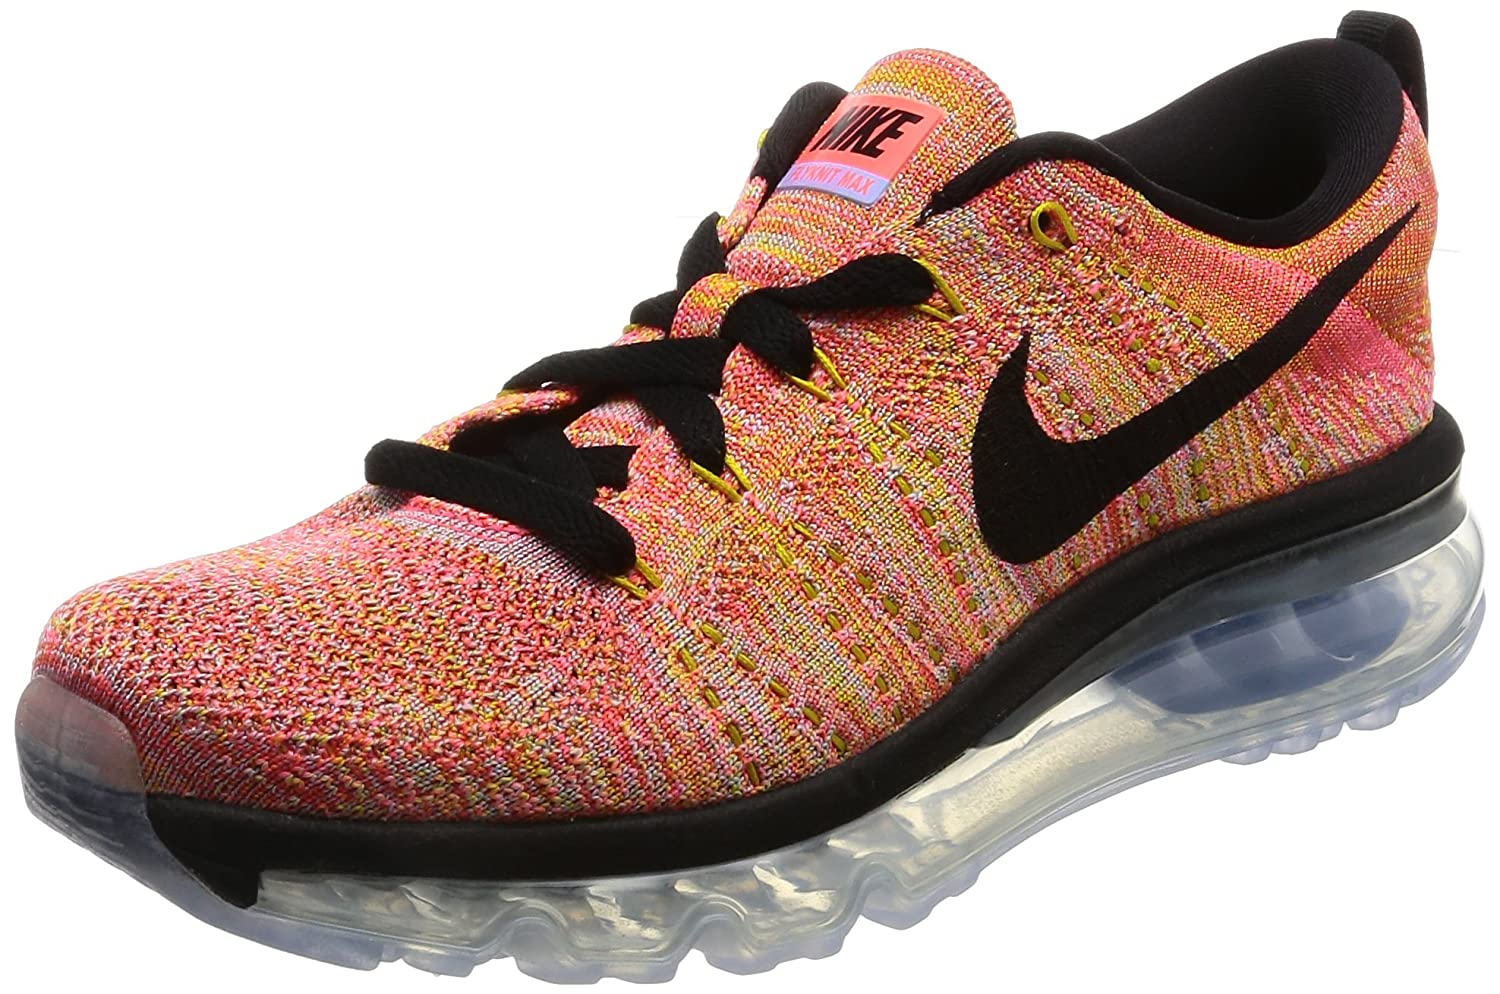 Nike Flyknit air max Womens Running Trainers 620659 Sneakers Shoes (US 7, Aluminium Black hot Punch 406)